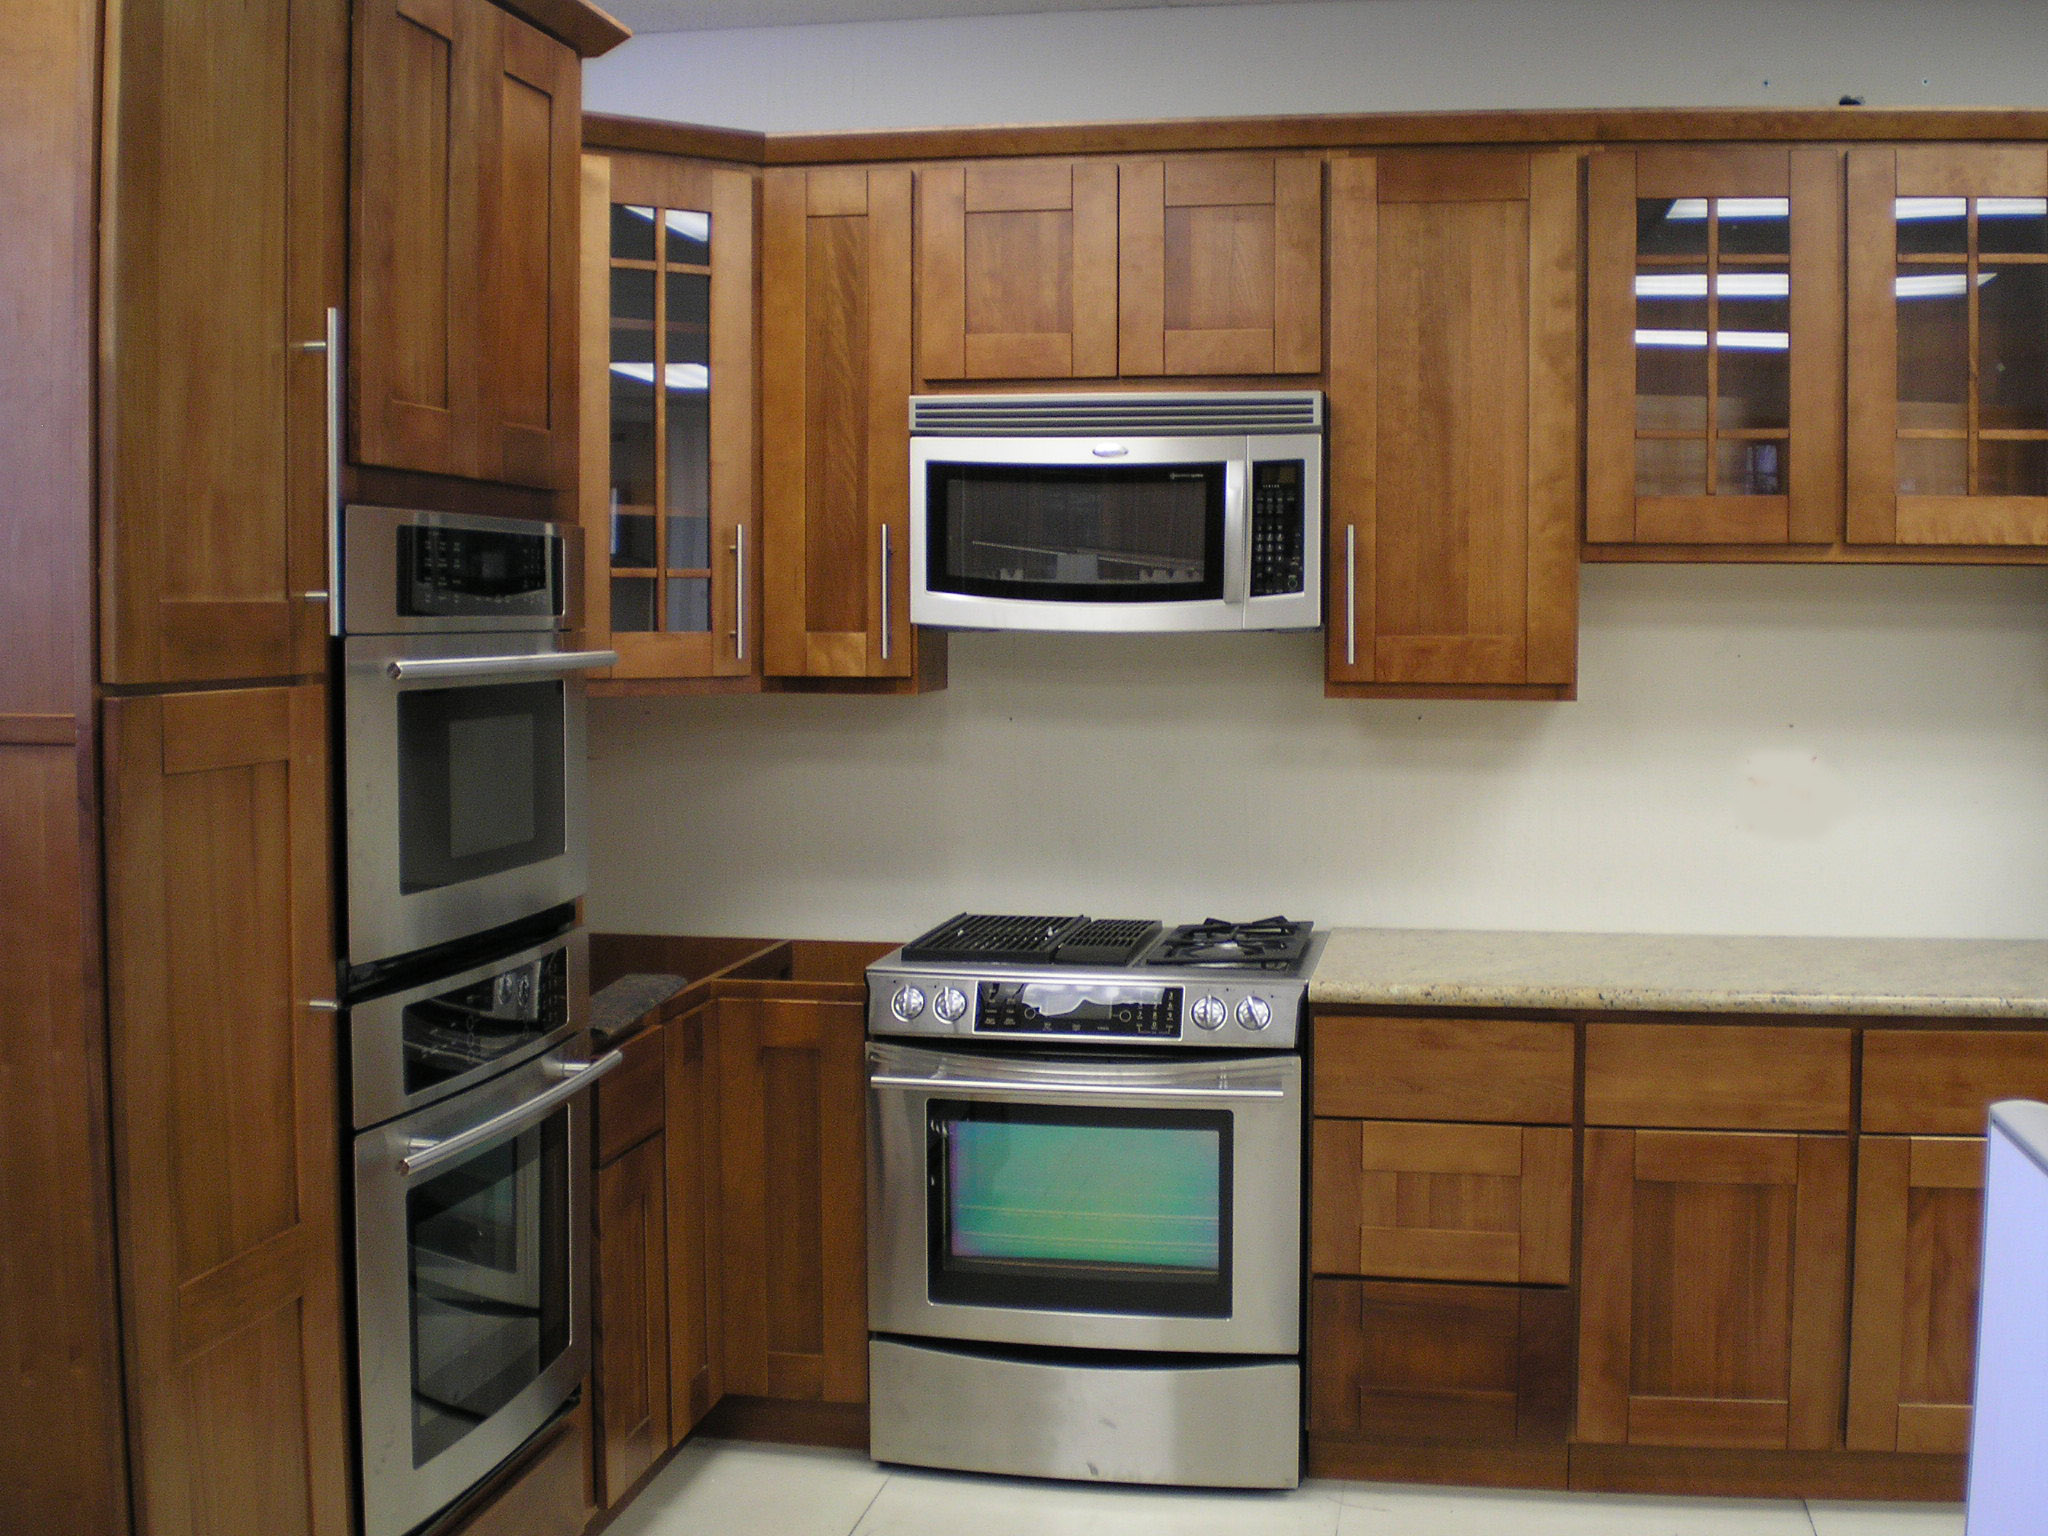 Storage cabinets for kitchen Photo - 3